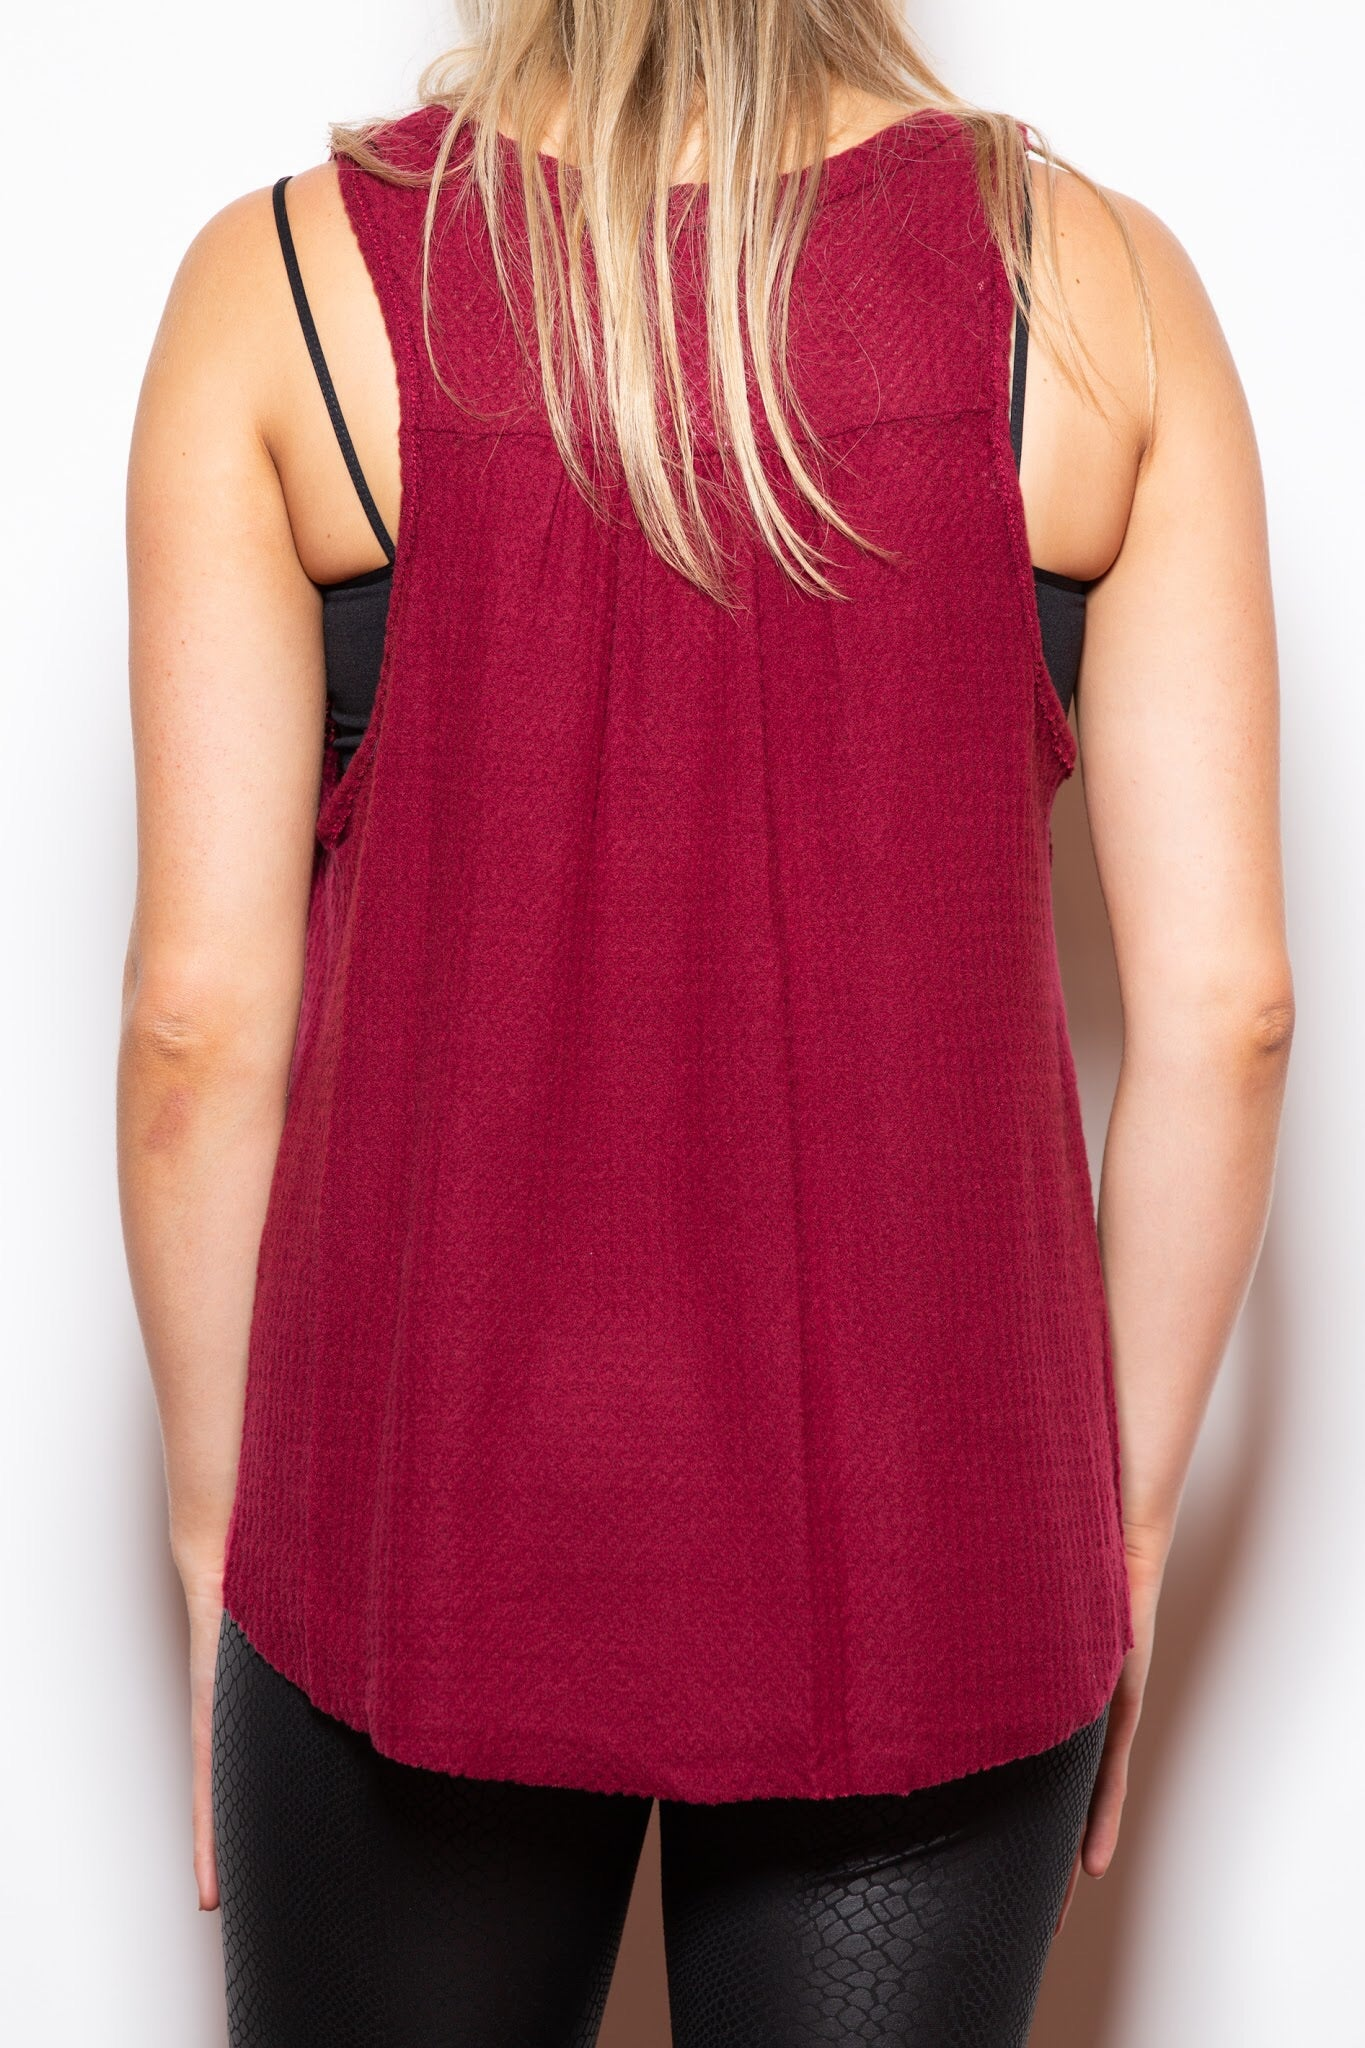 Taking Chances Knit Tank - impromptu boutique